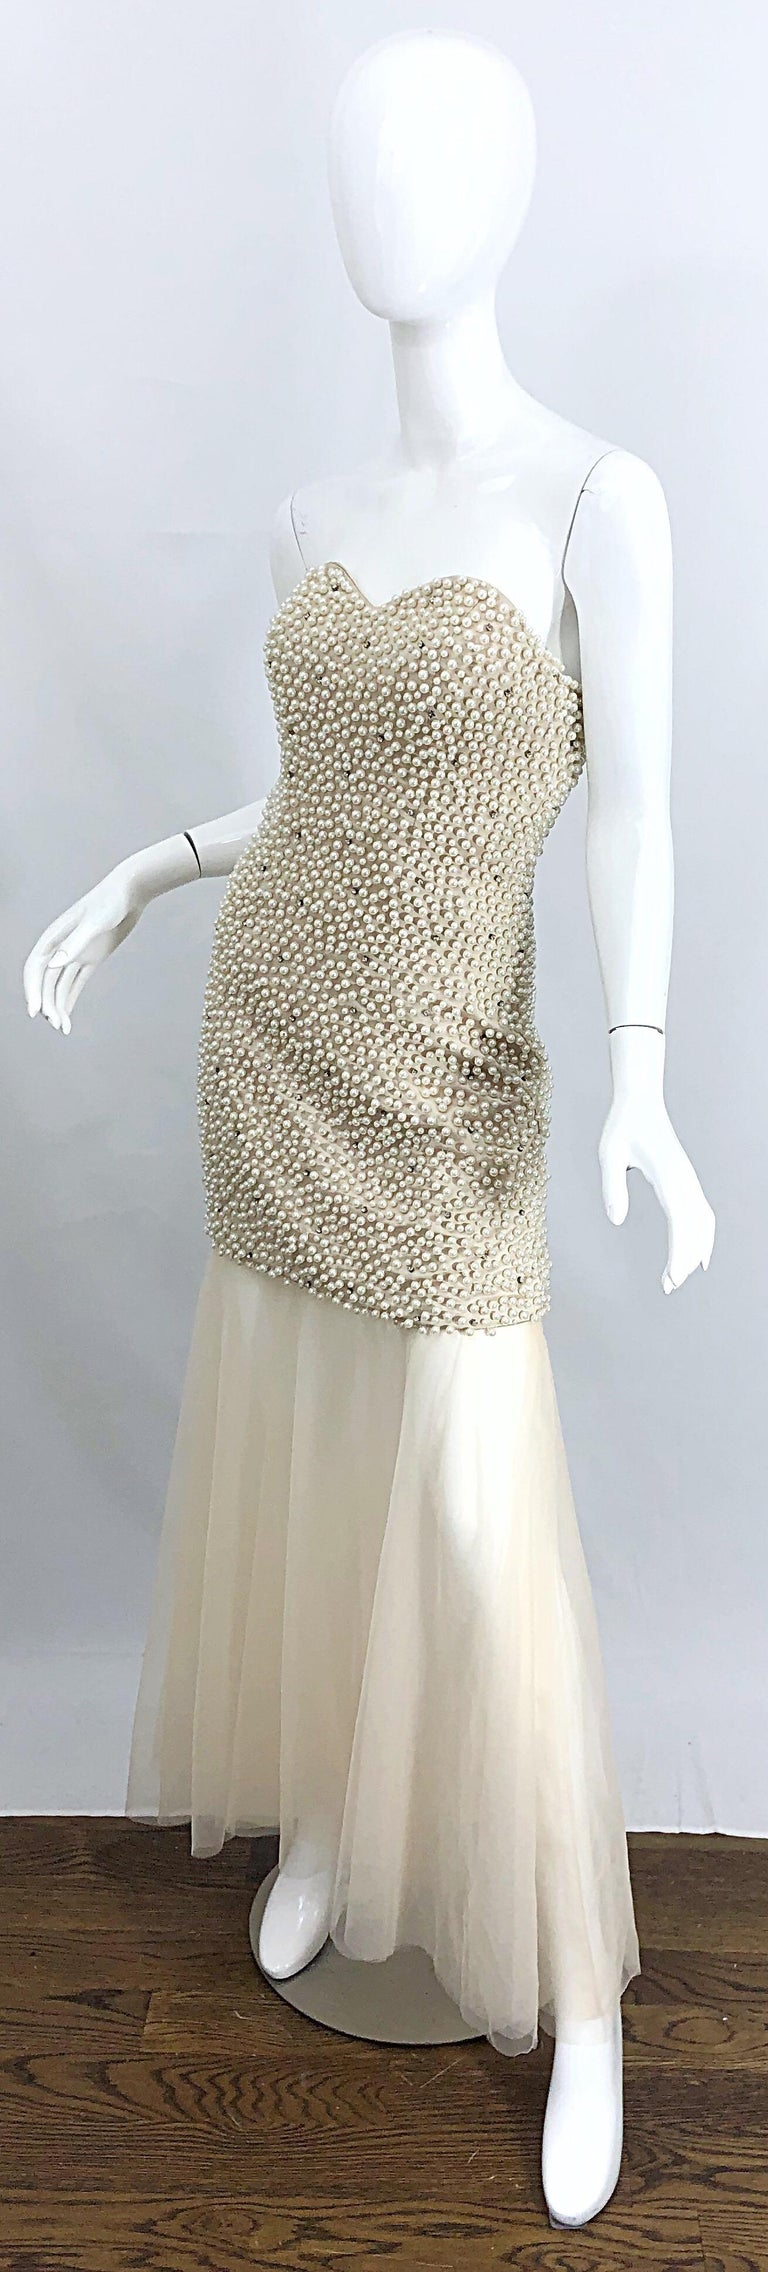 Phenomenal 1990s Couture Pearl + Rhinestone Encrusted Strapless Beige 90s Gown For Sale 1